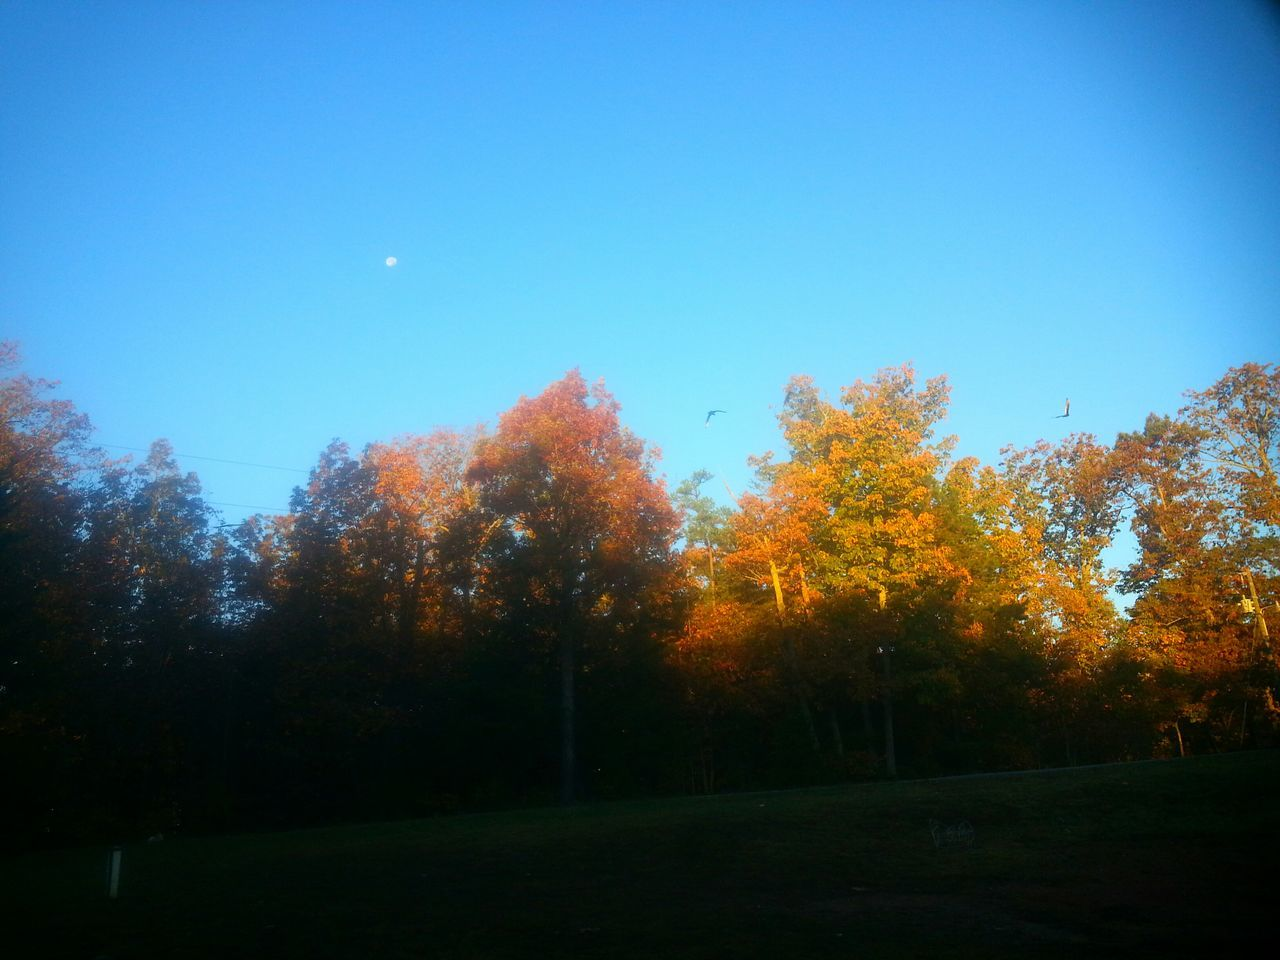 Morning Sky Moon Flying Birds Ducks And Geese United States Of America Gretna, Va Usa Virginia EyeEm Nature Lovers Tupponce Photography David Tupponce Autumn Colors Light And Shadows The Beauty Of Fall